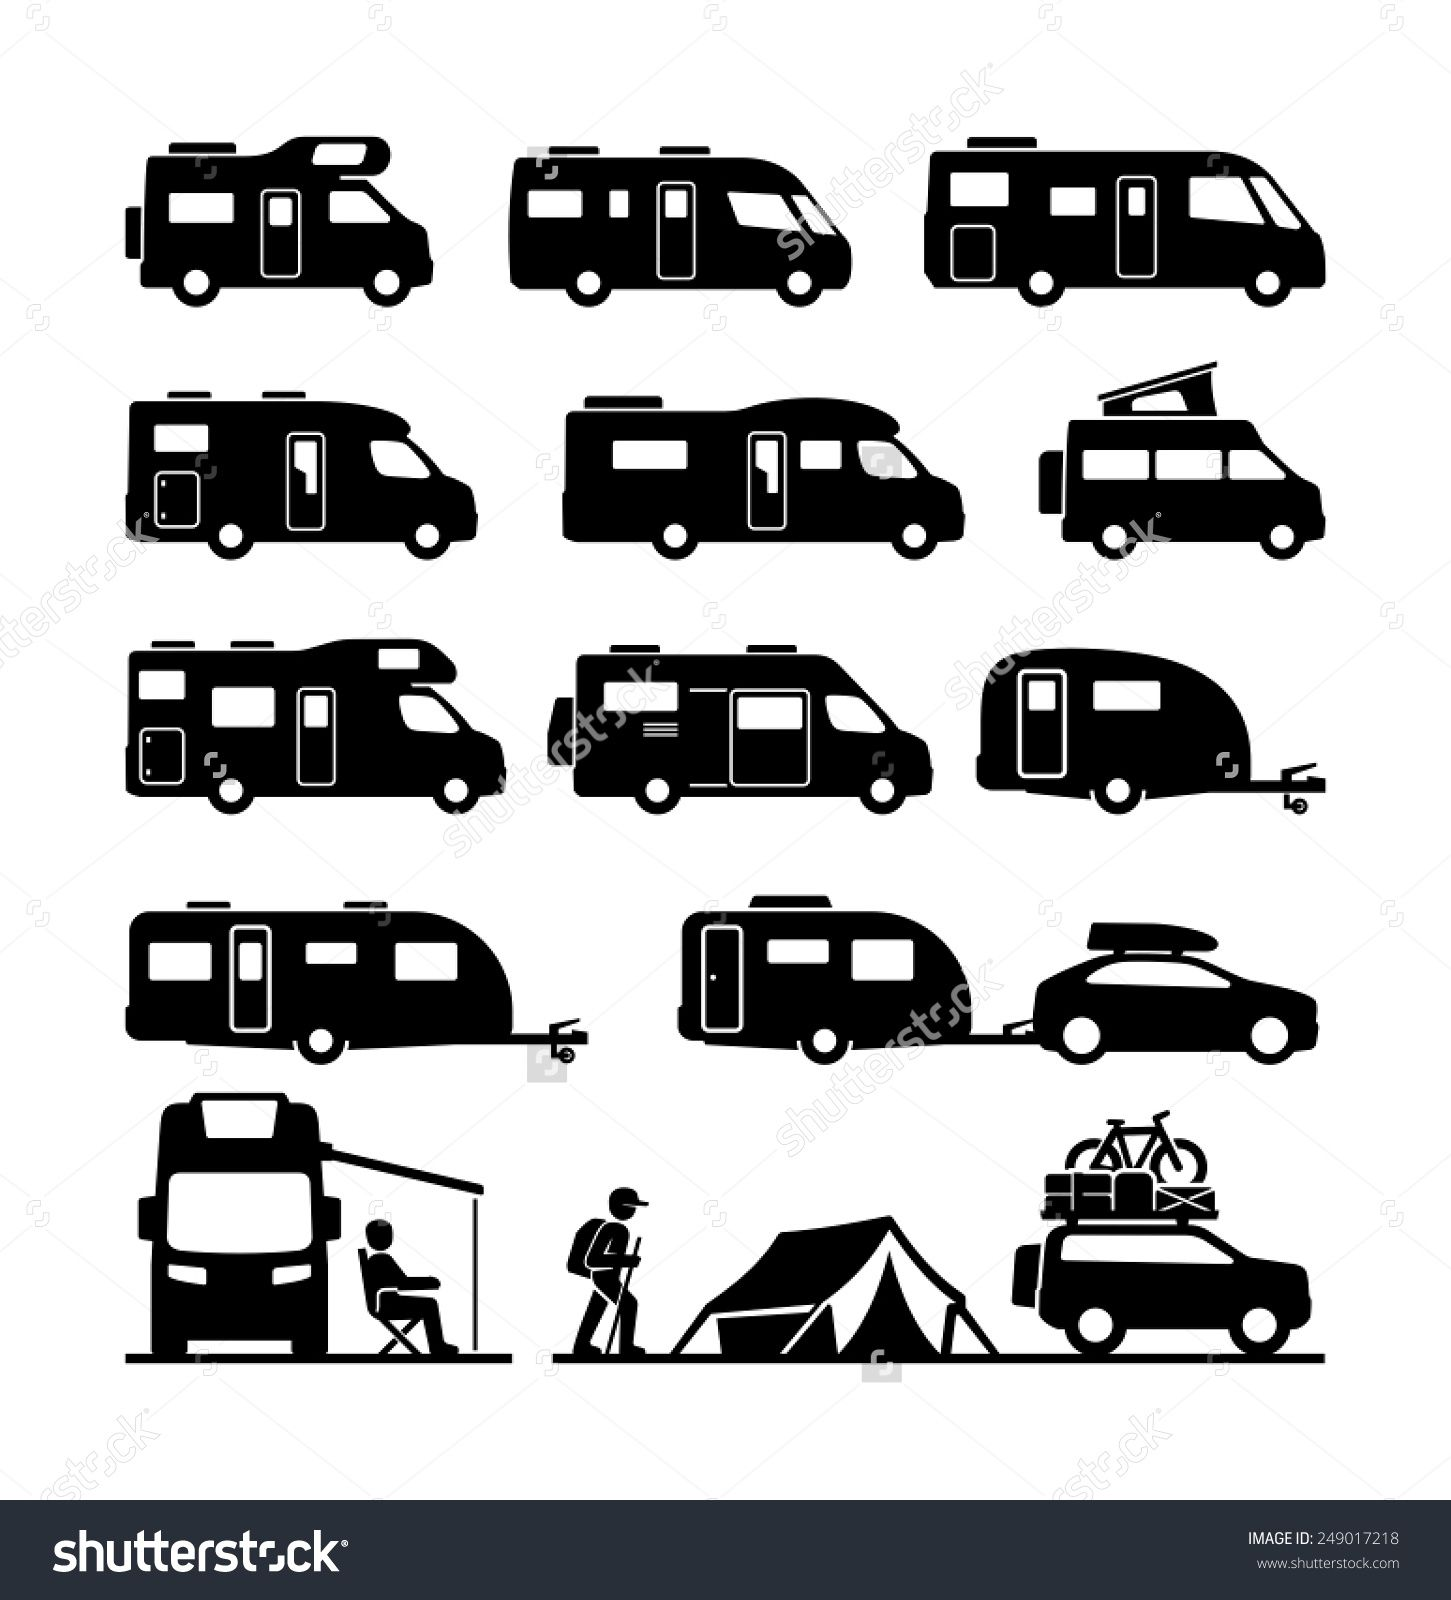 Camper clipart black white 6 » Clipart Station.